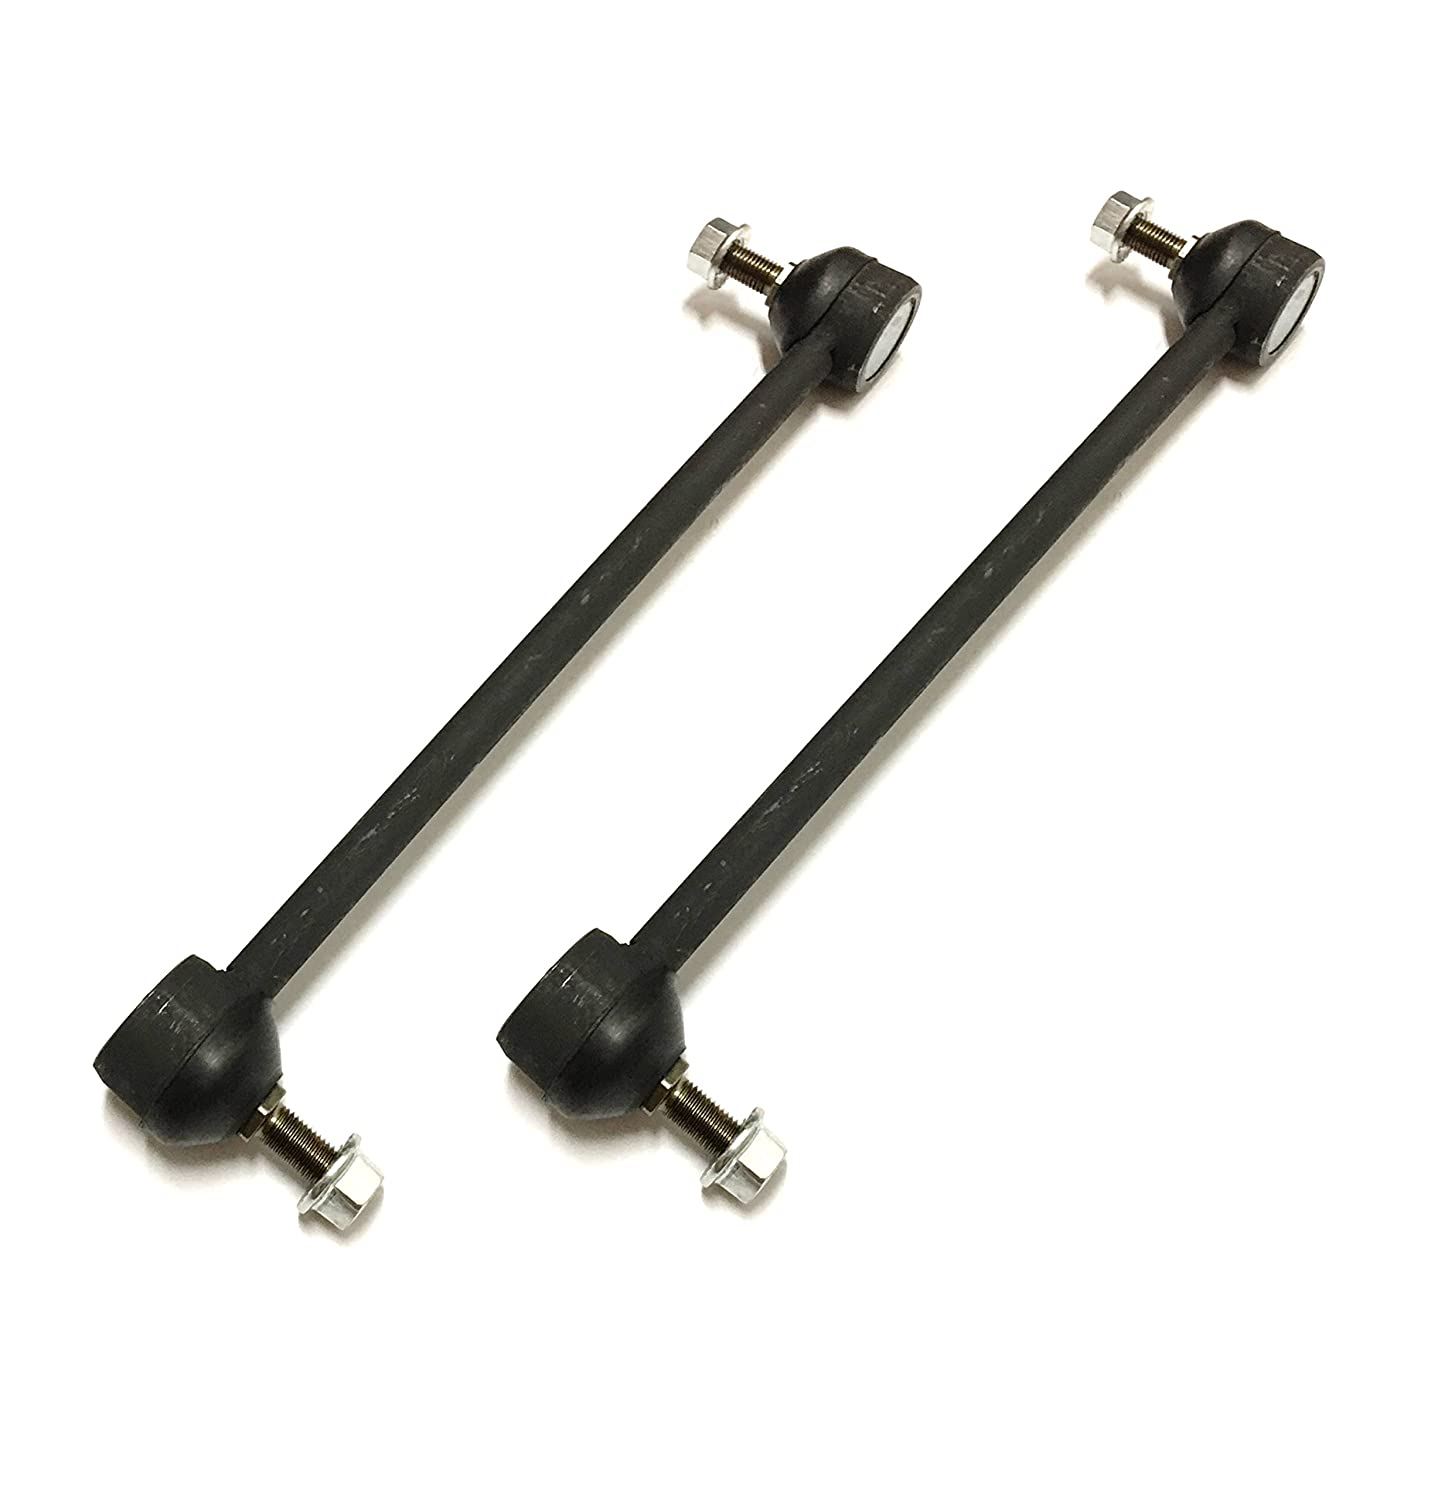 PartsW 2 Piece Suspension Kit Left & Right Sway Bar Links for Ford Taurus, Sable, Lincoln Continental & Mercury Sable